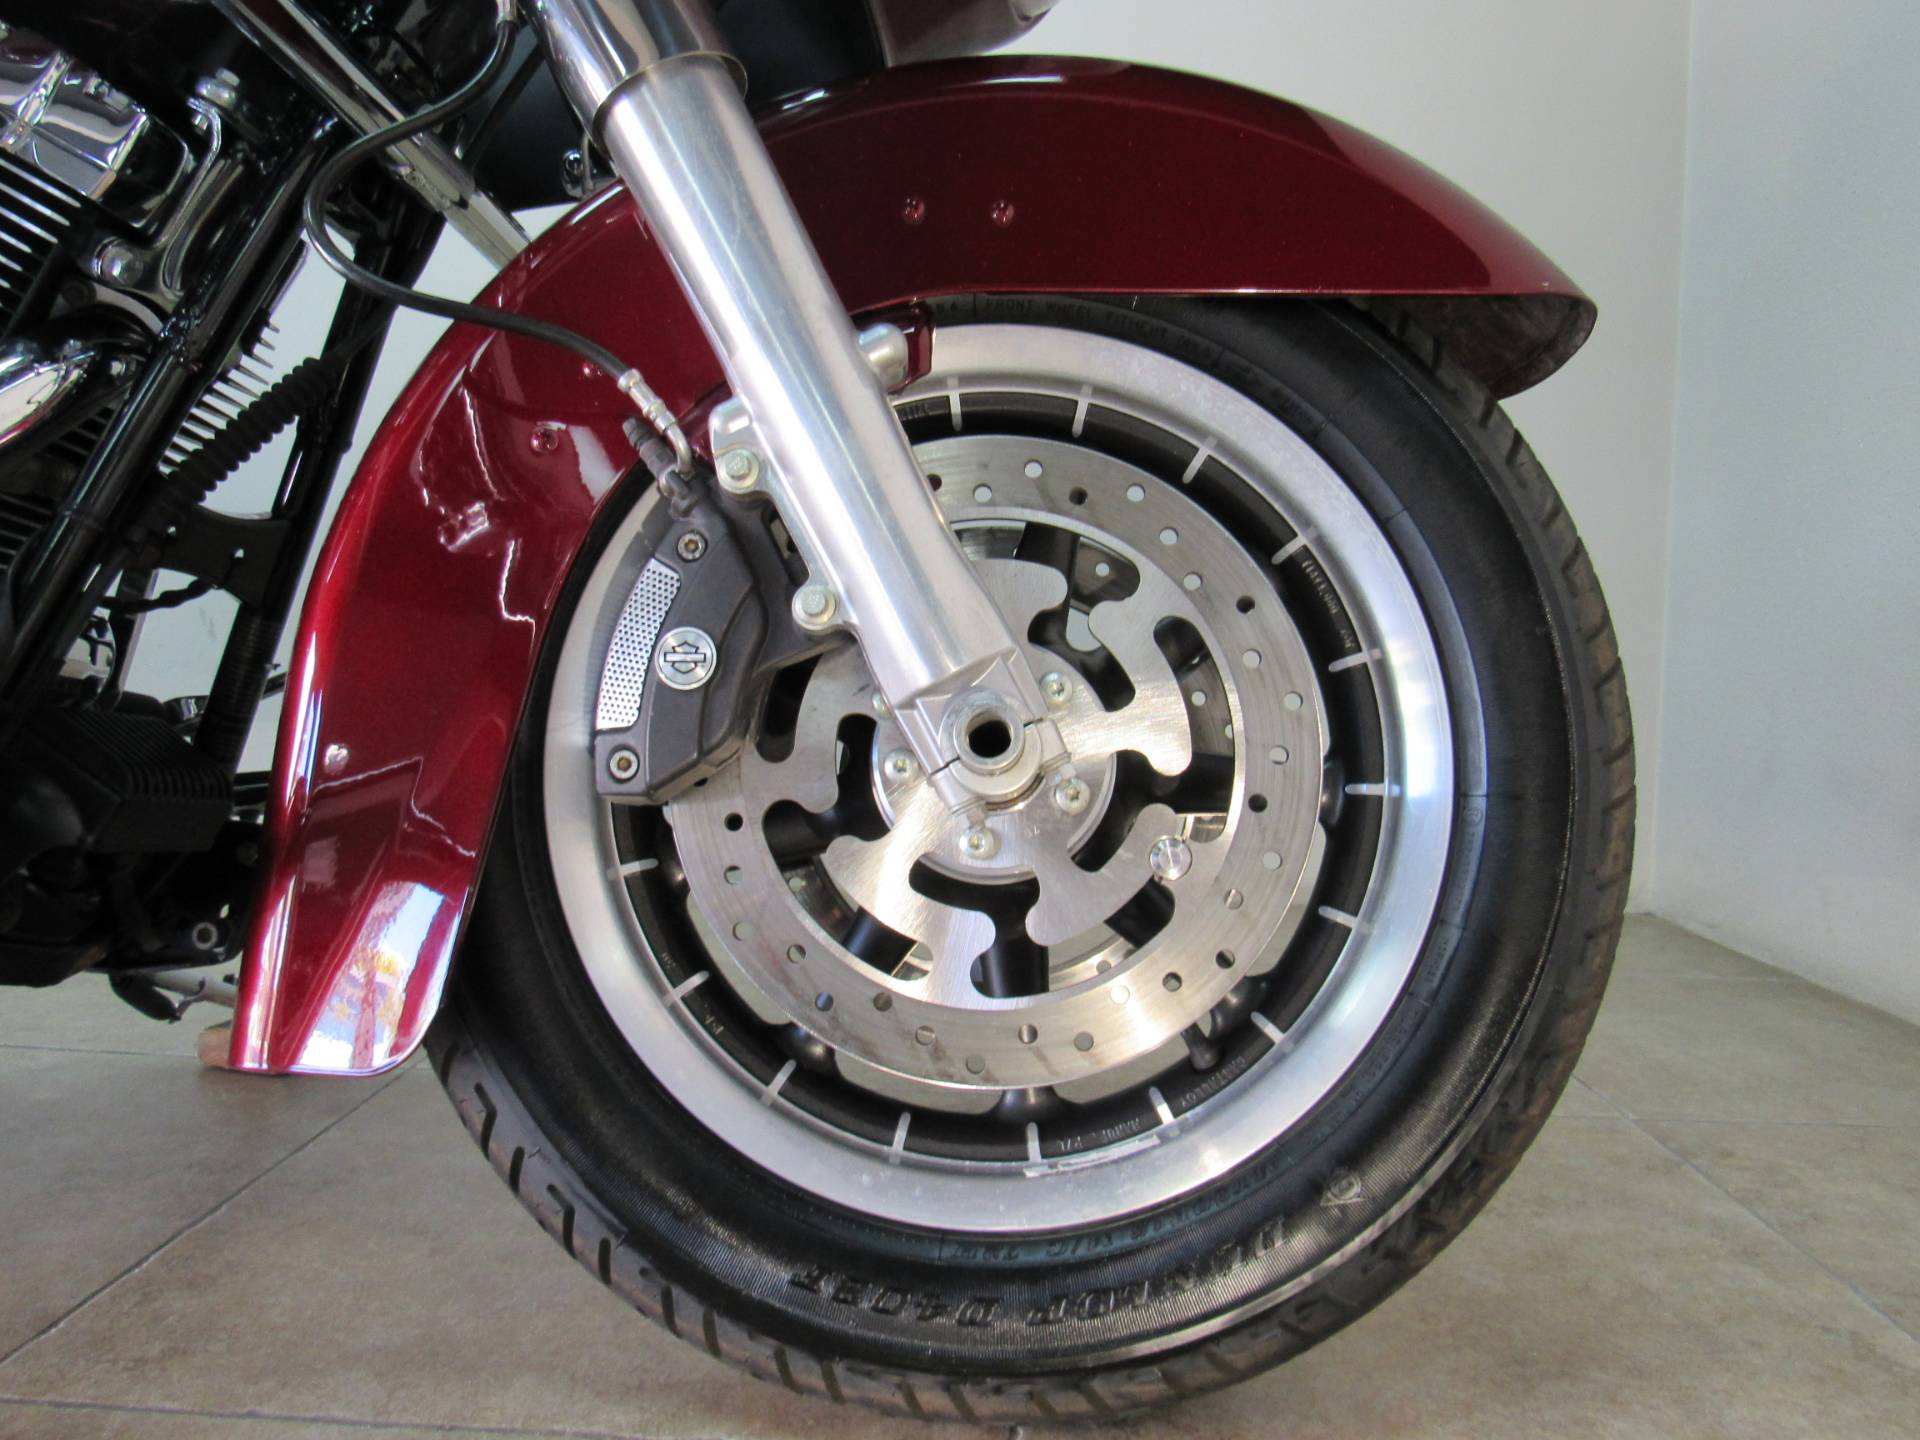 2008 Harley-Davidson Road Glide® in Temecula, California - Photo 24